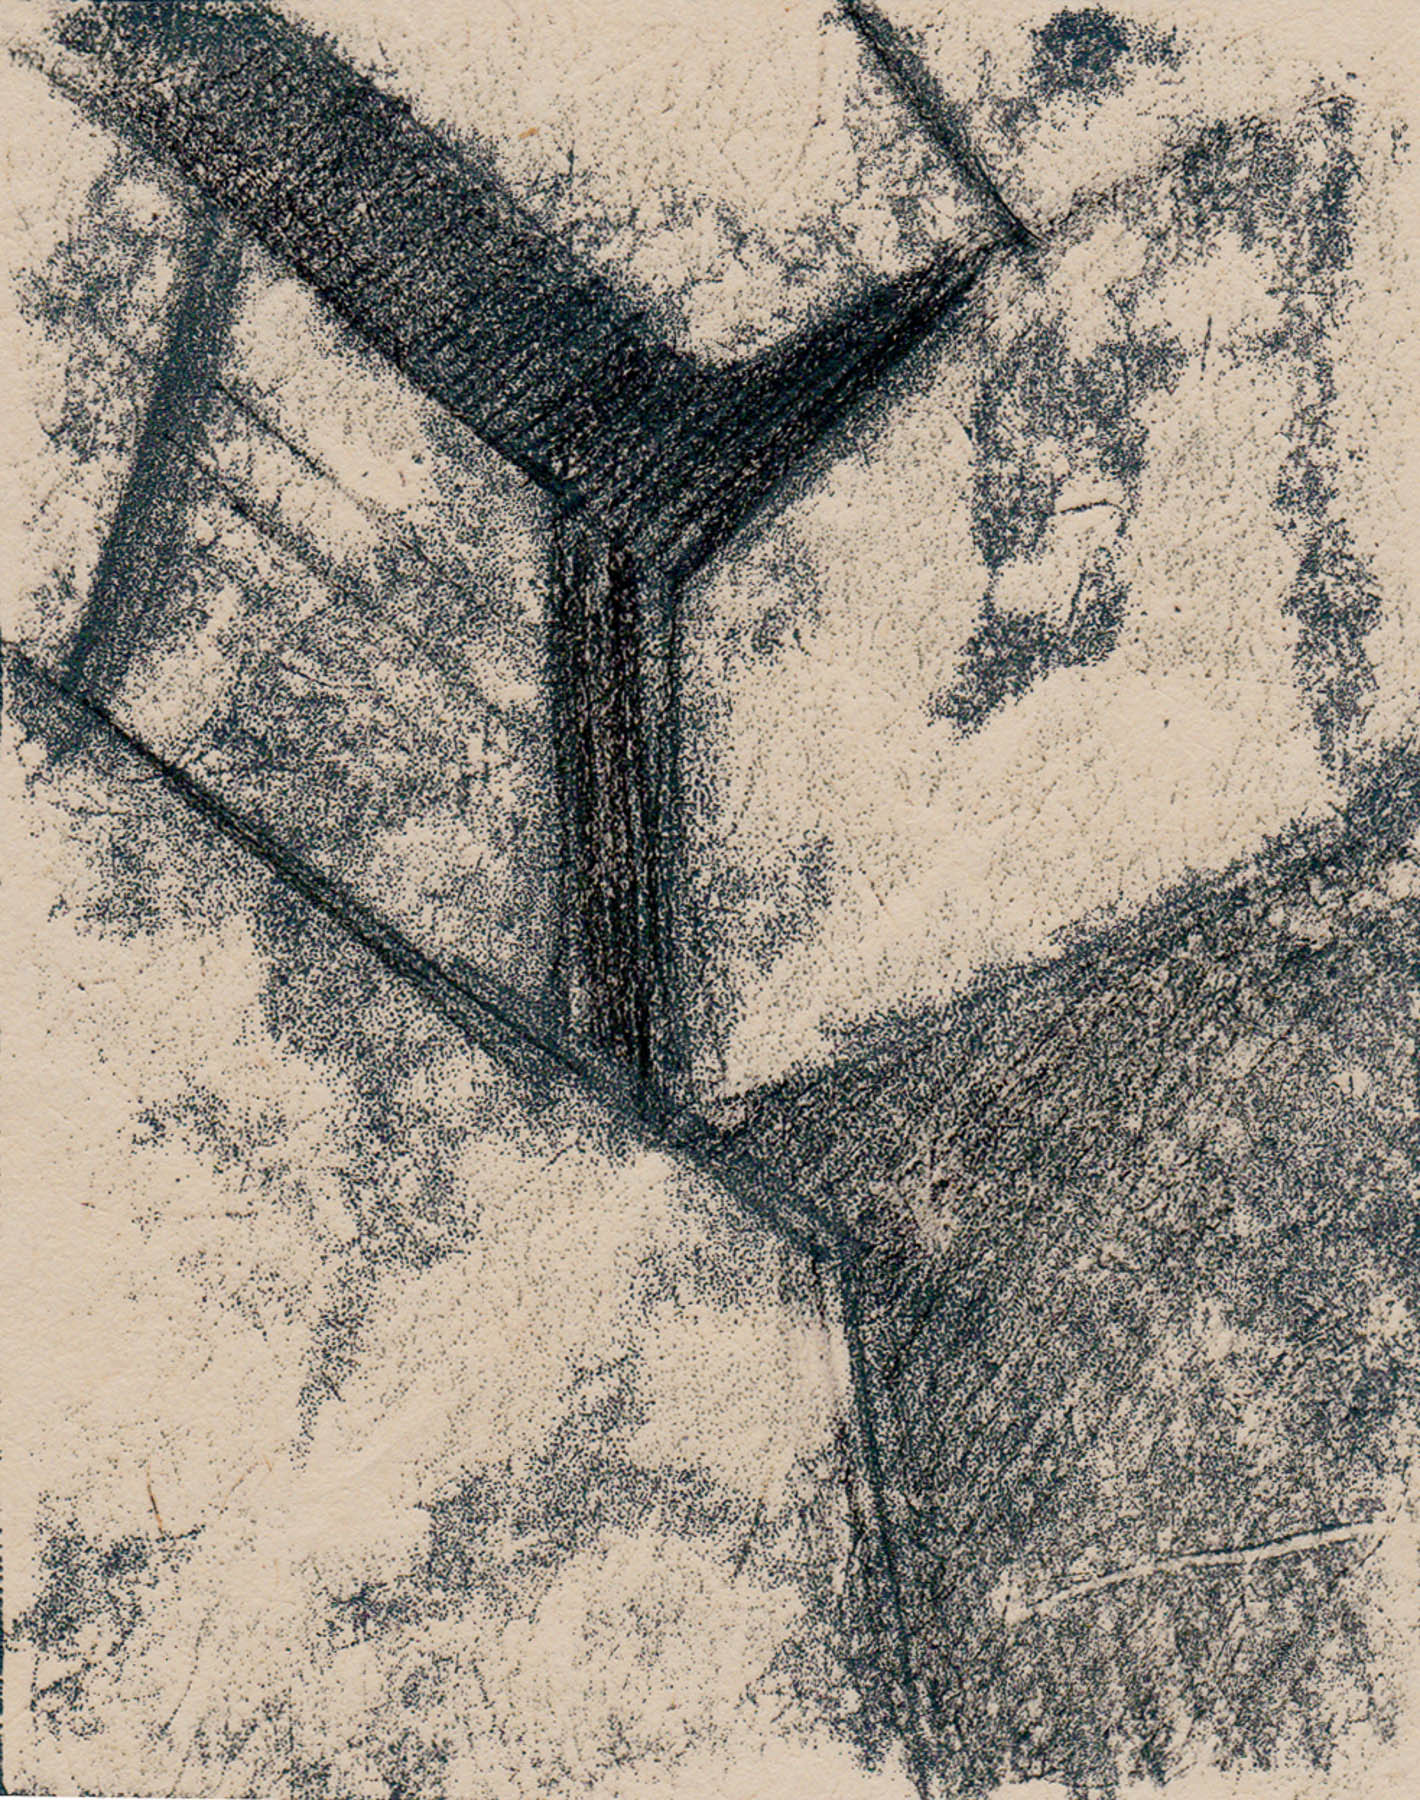 Window, Monotype, Ink on Rice Paper, 5 x 7 inches